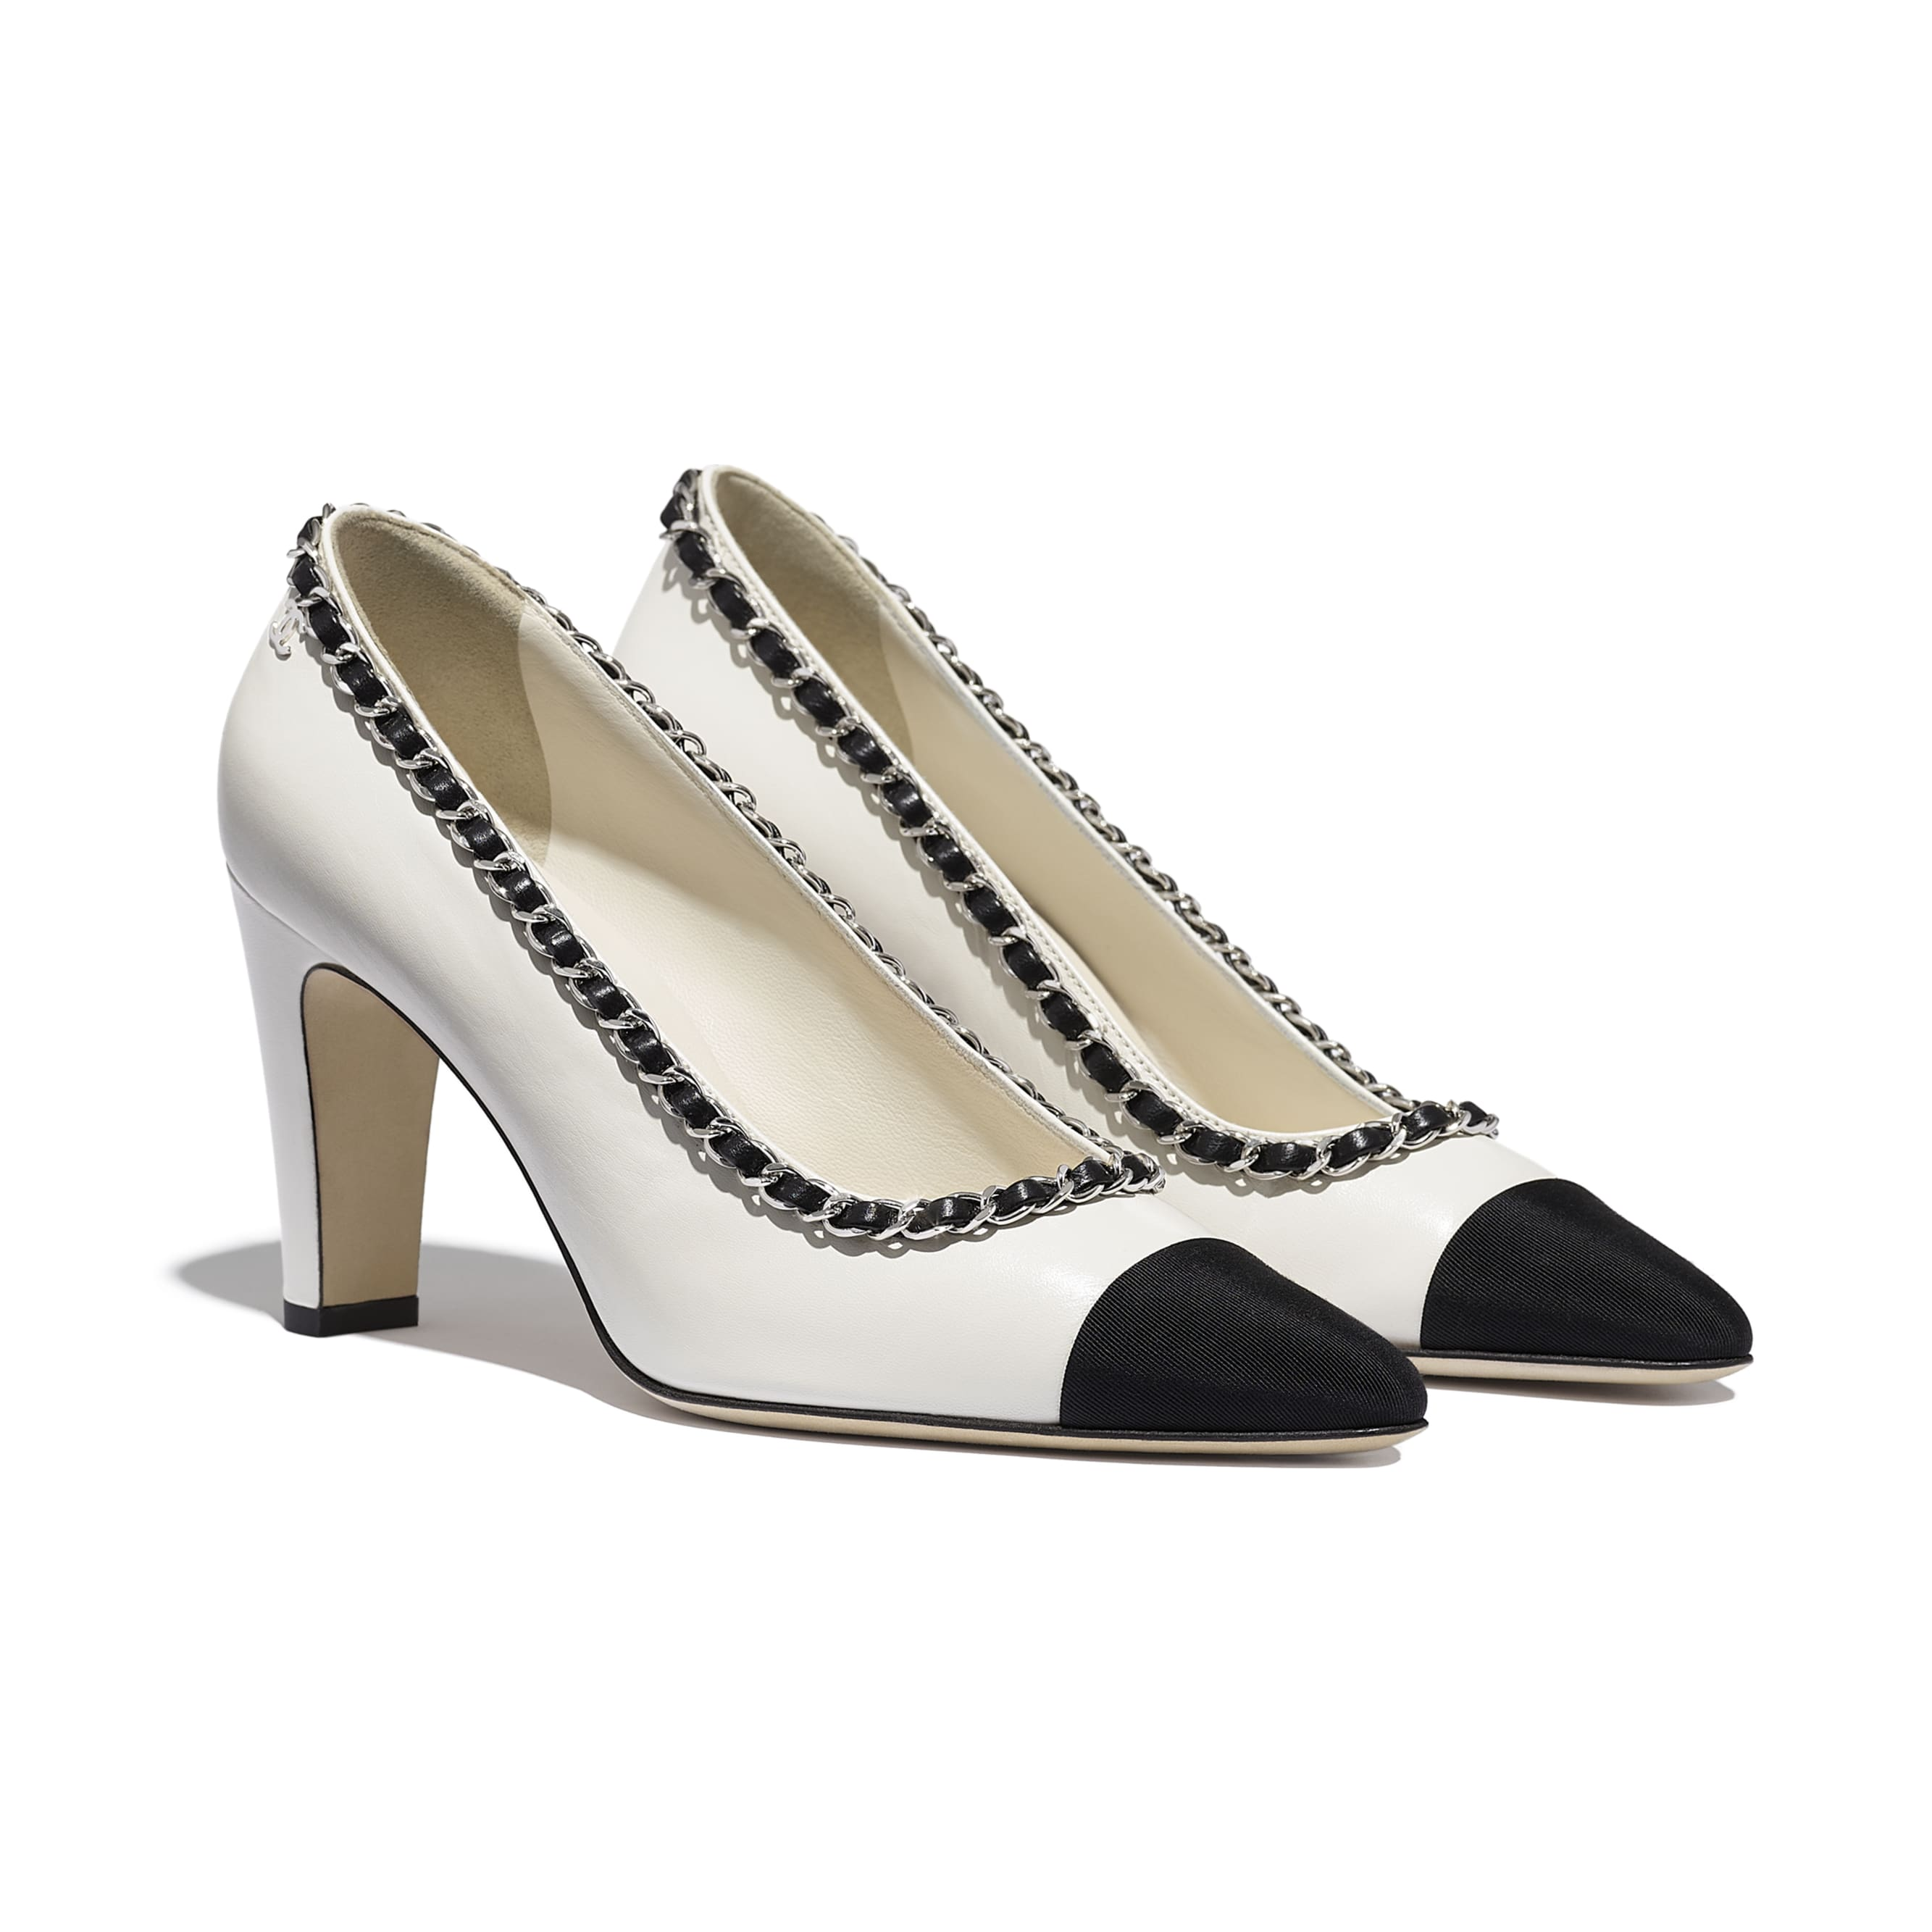 Pumps - Ivory & Black - Lambskin - CHANEL - Alternative view - see standard sized version